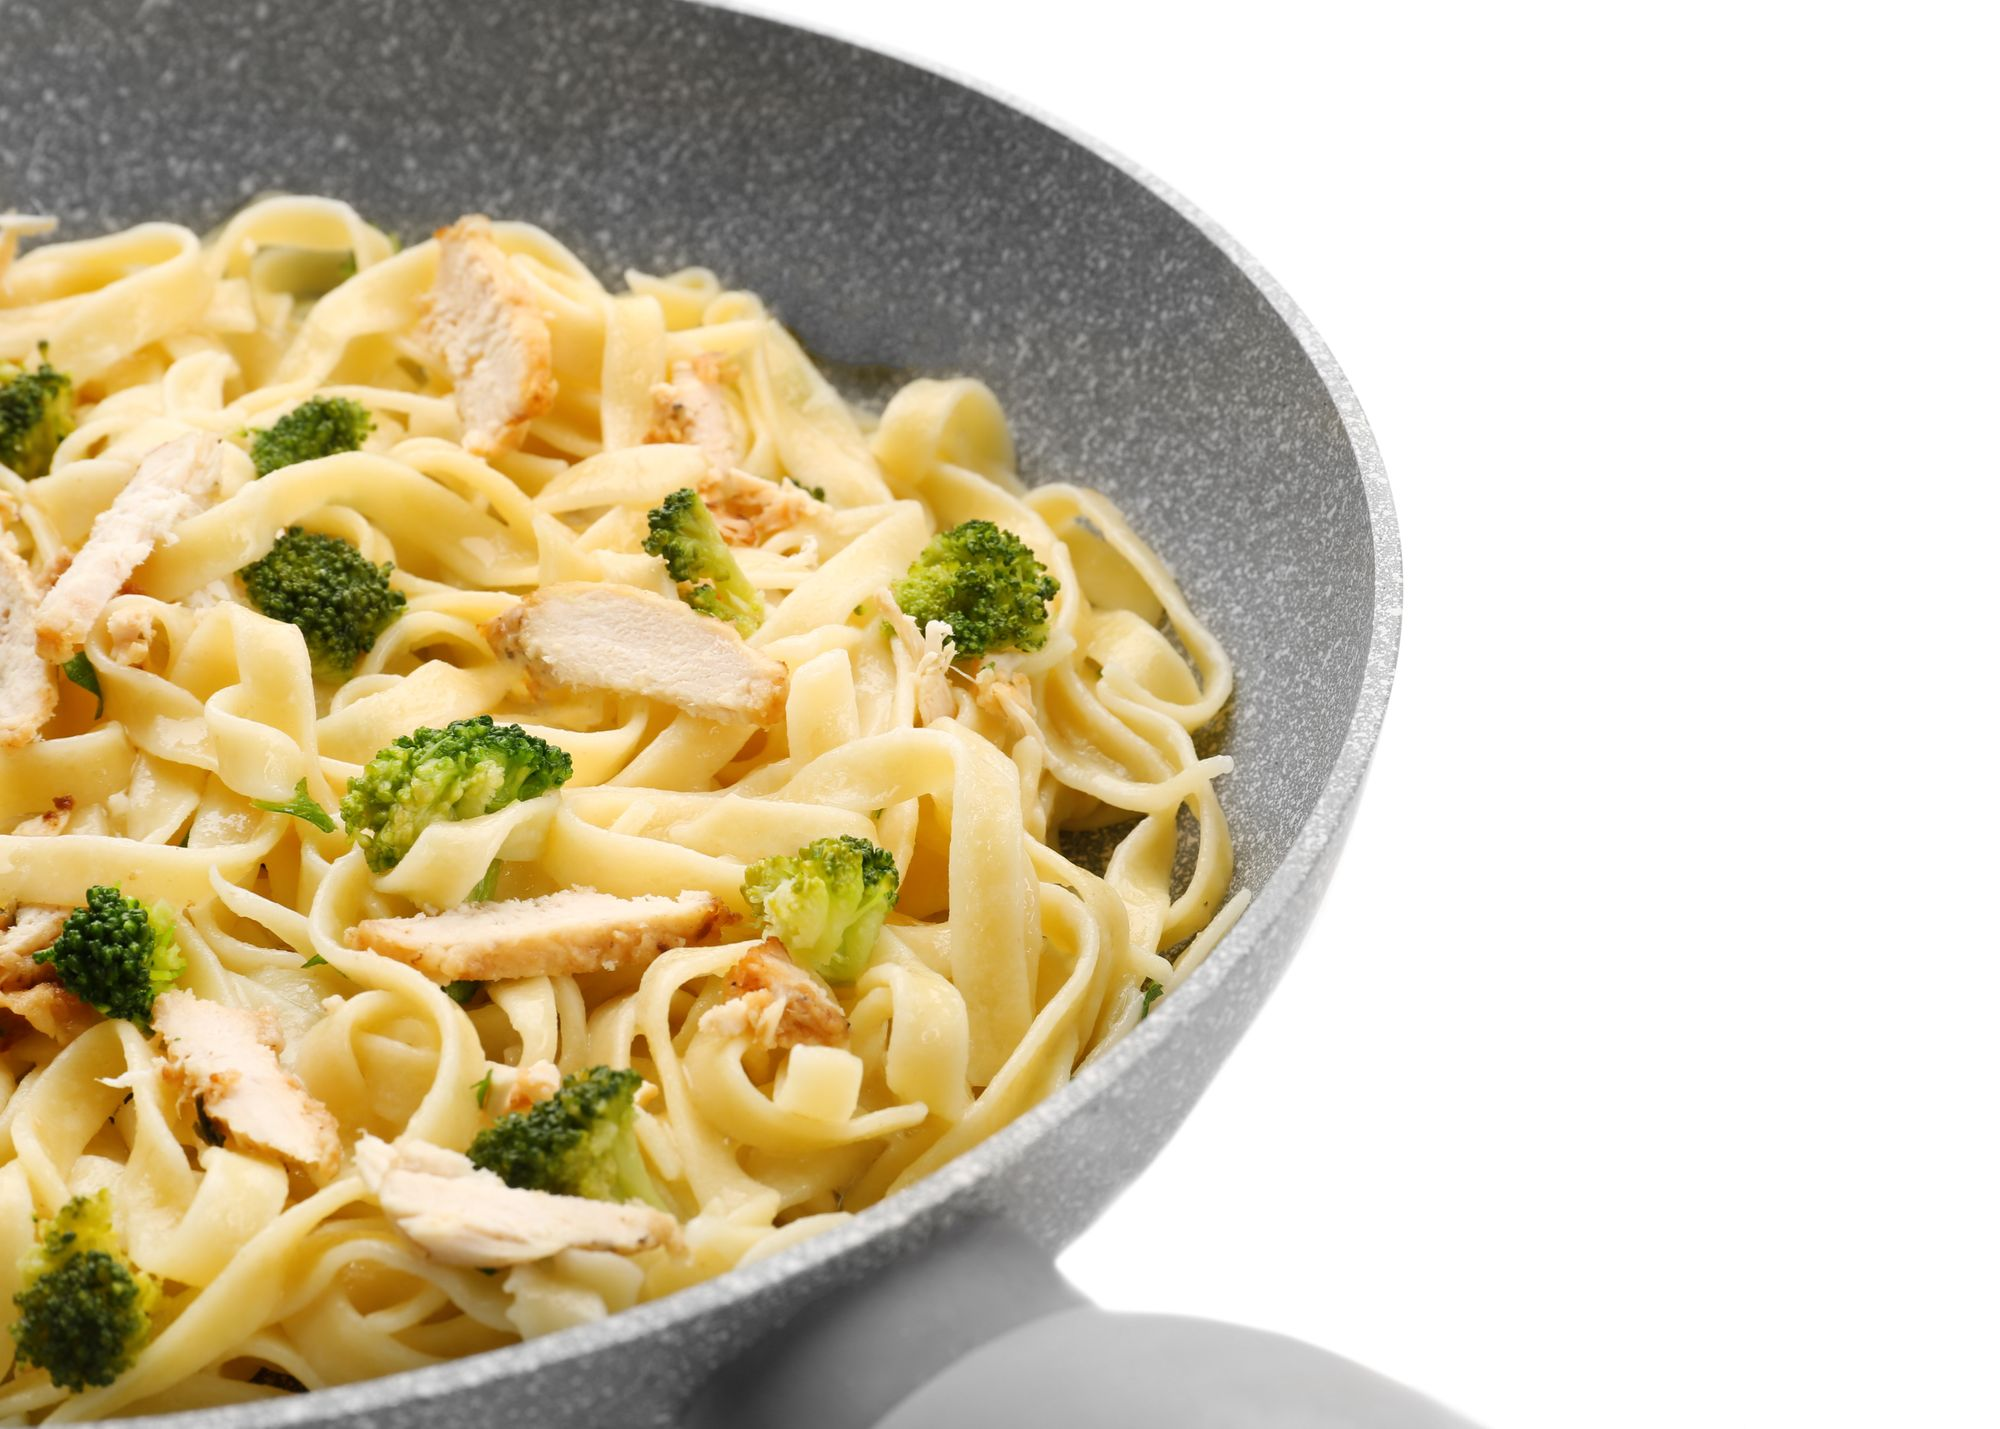 Pasta with Broccoli and Anchovies